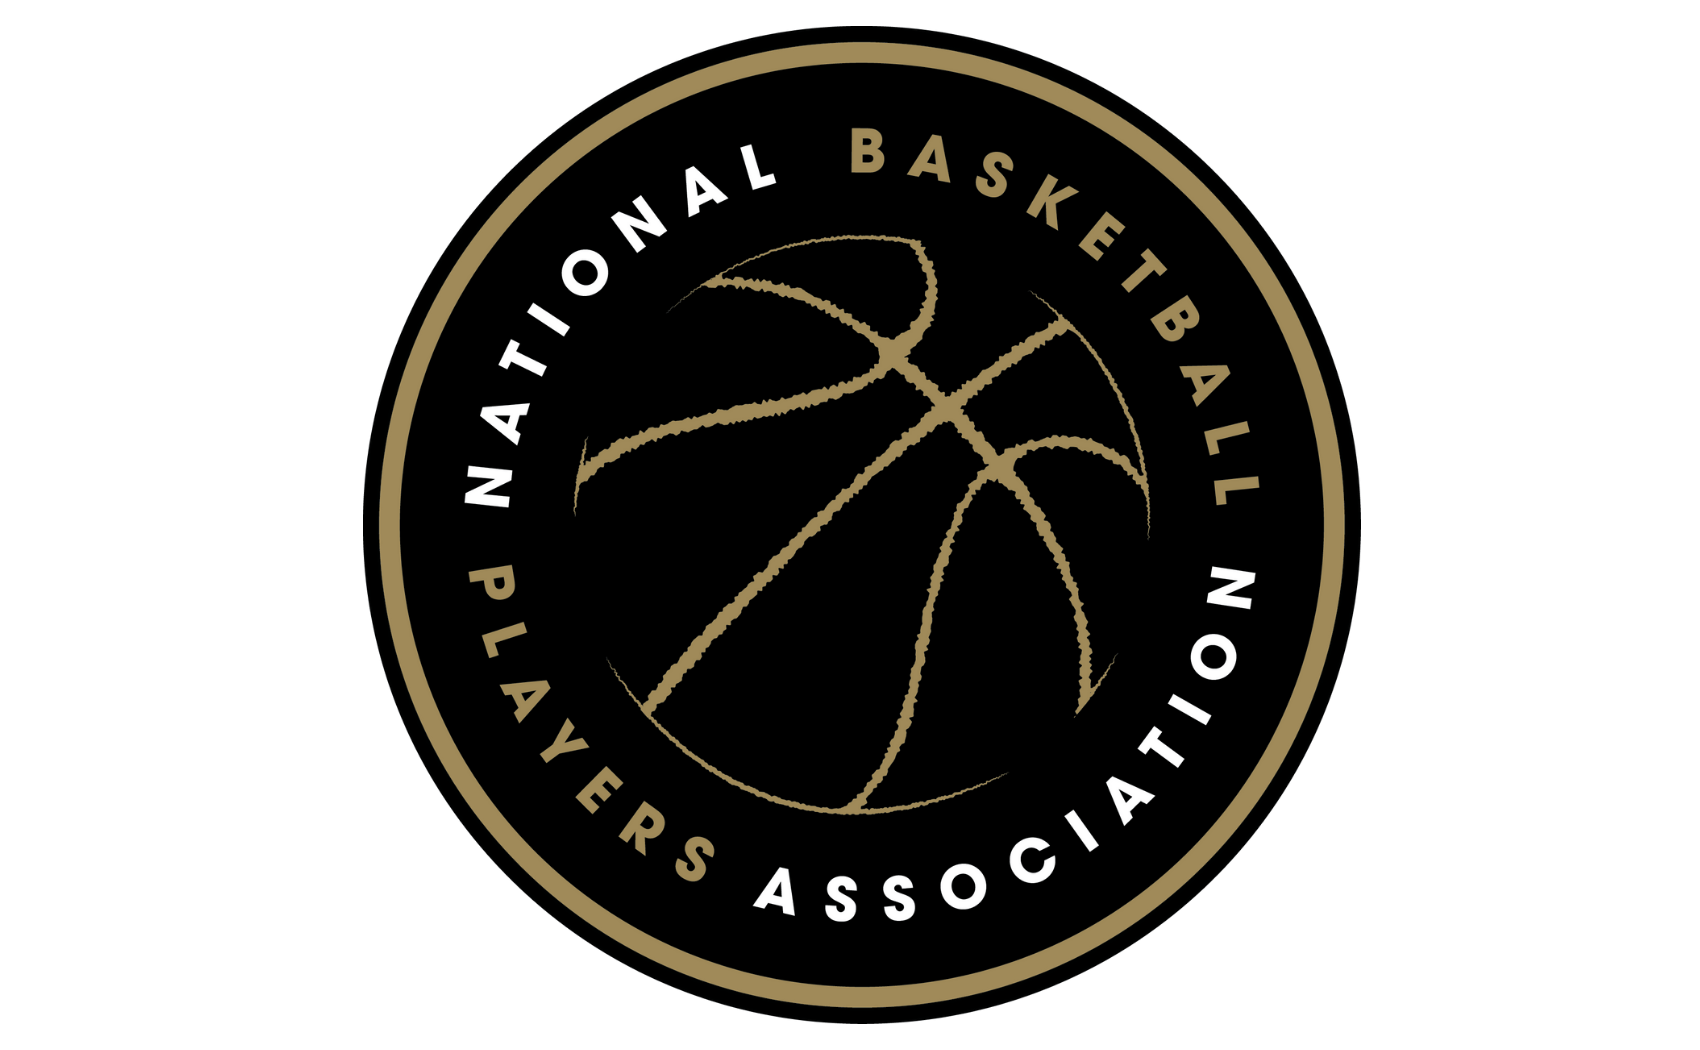 MOT: NBPA announces sponsorship for One Court Bahamas